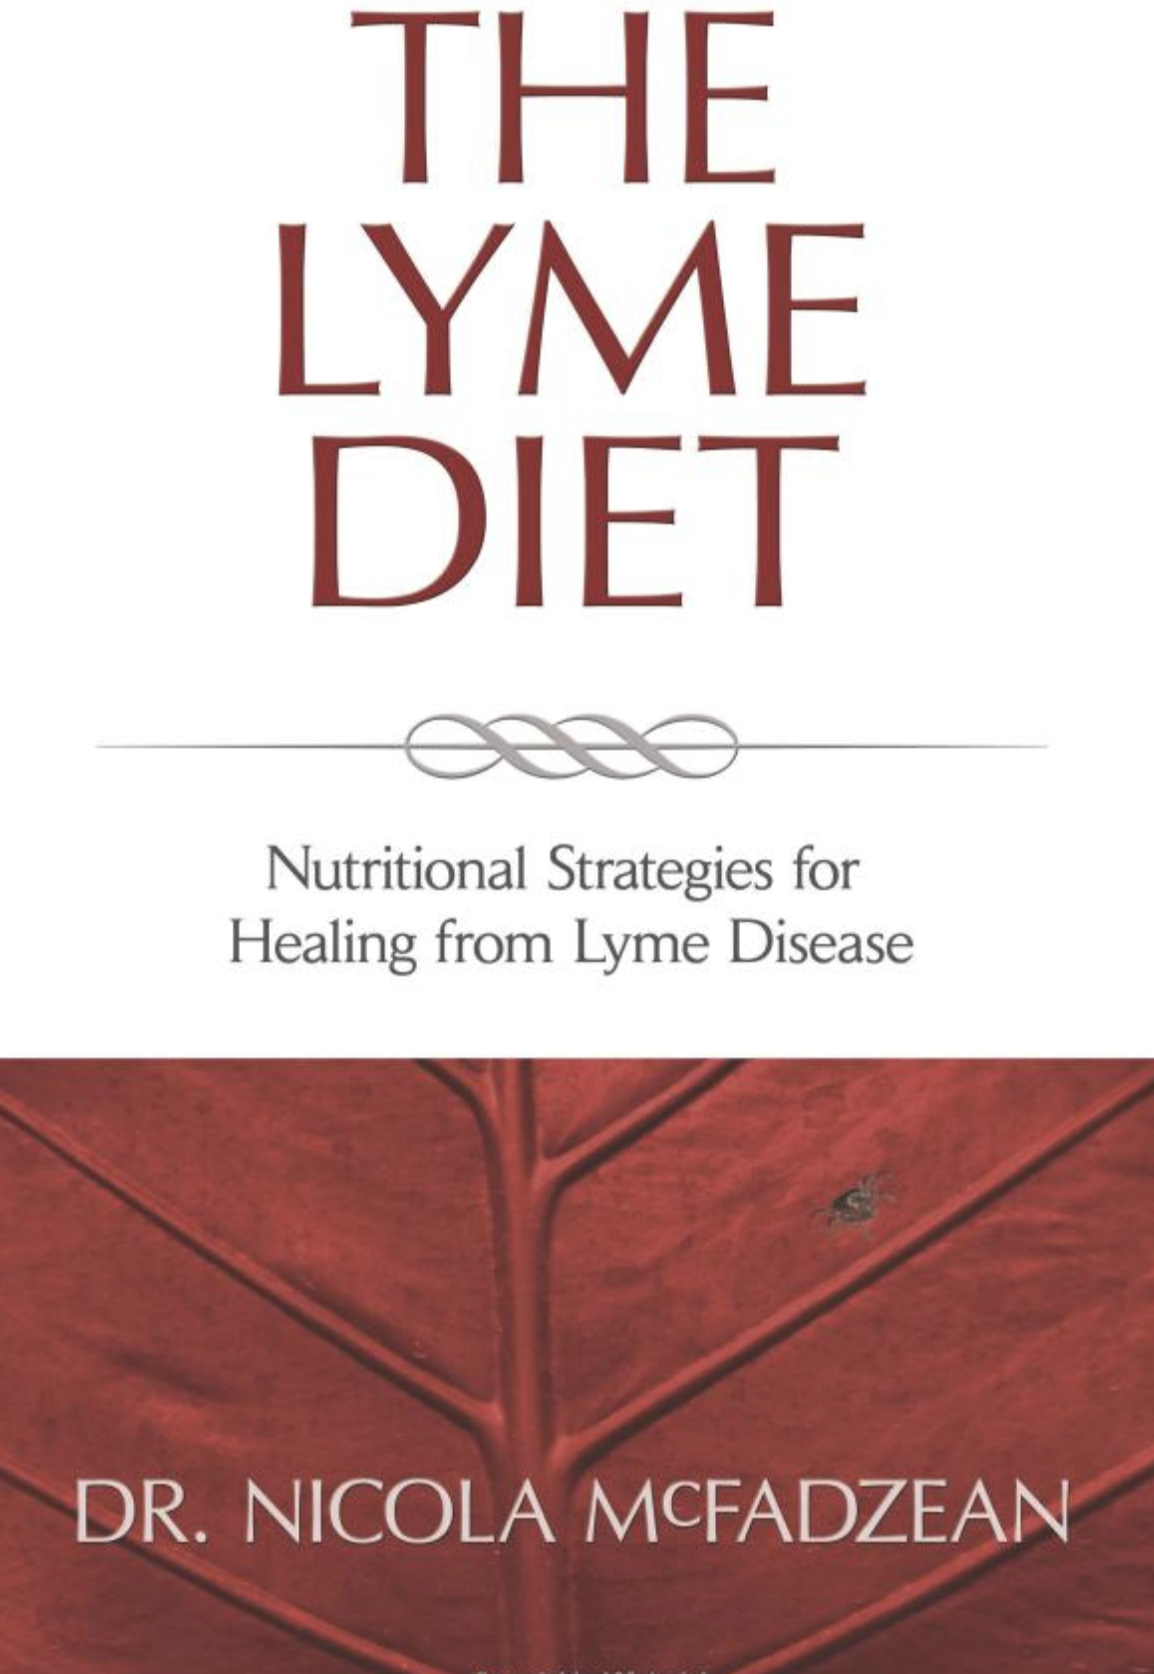 The Lyme Diet: Nutritional Strategies for Healing from Lyme Disease, By Nicola McFadzean ND